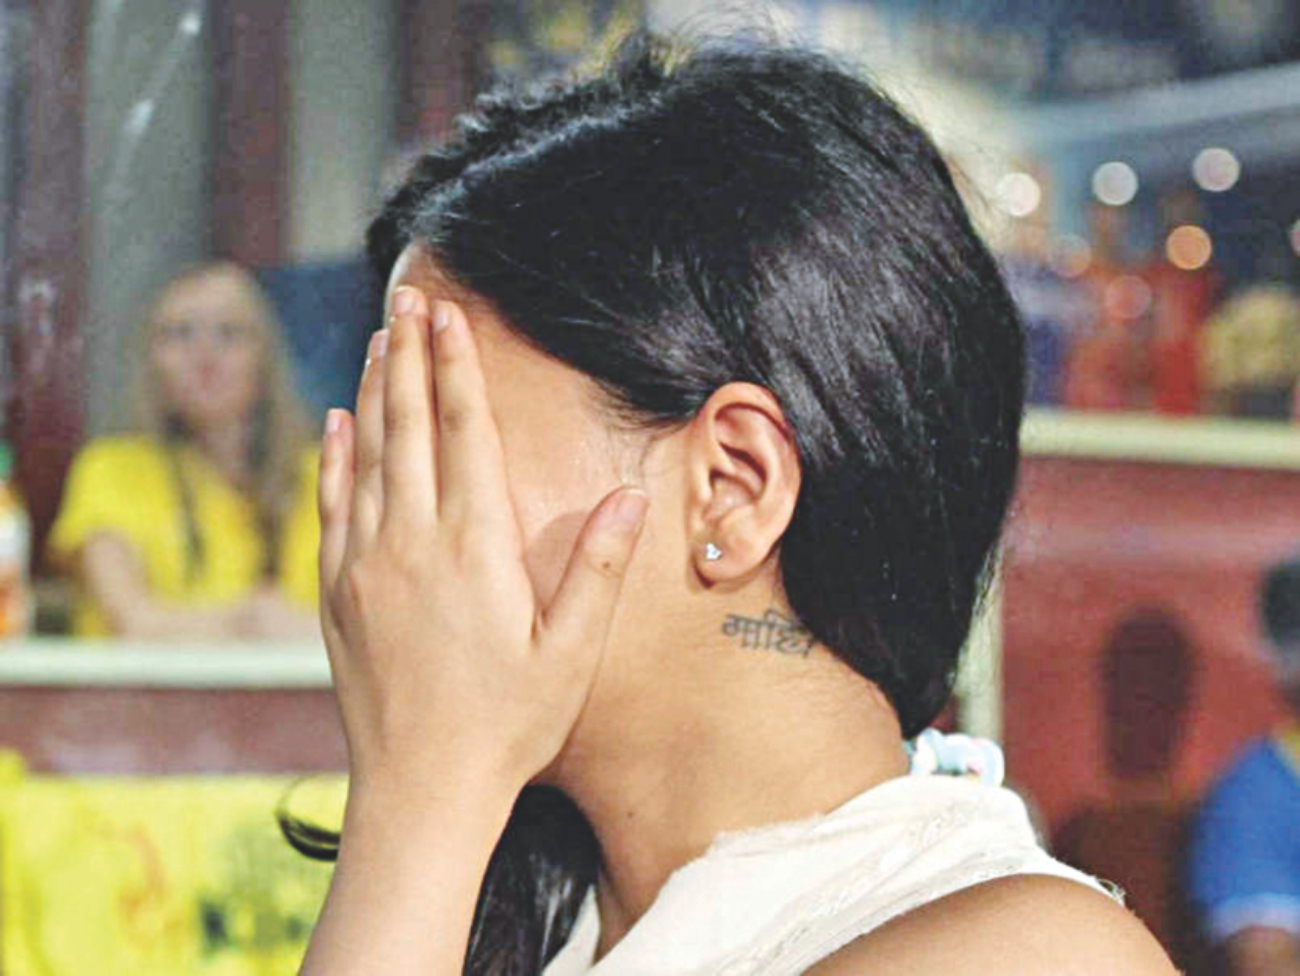 Sakshi Dhoni is showing 'Mahi' Tattoo while hiding her Face.